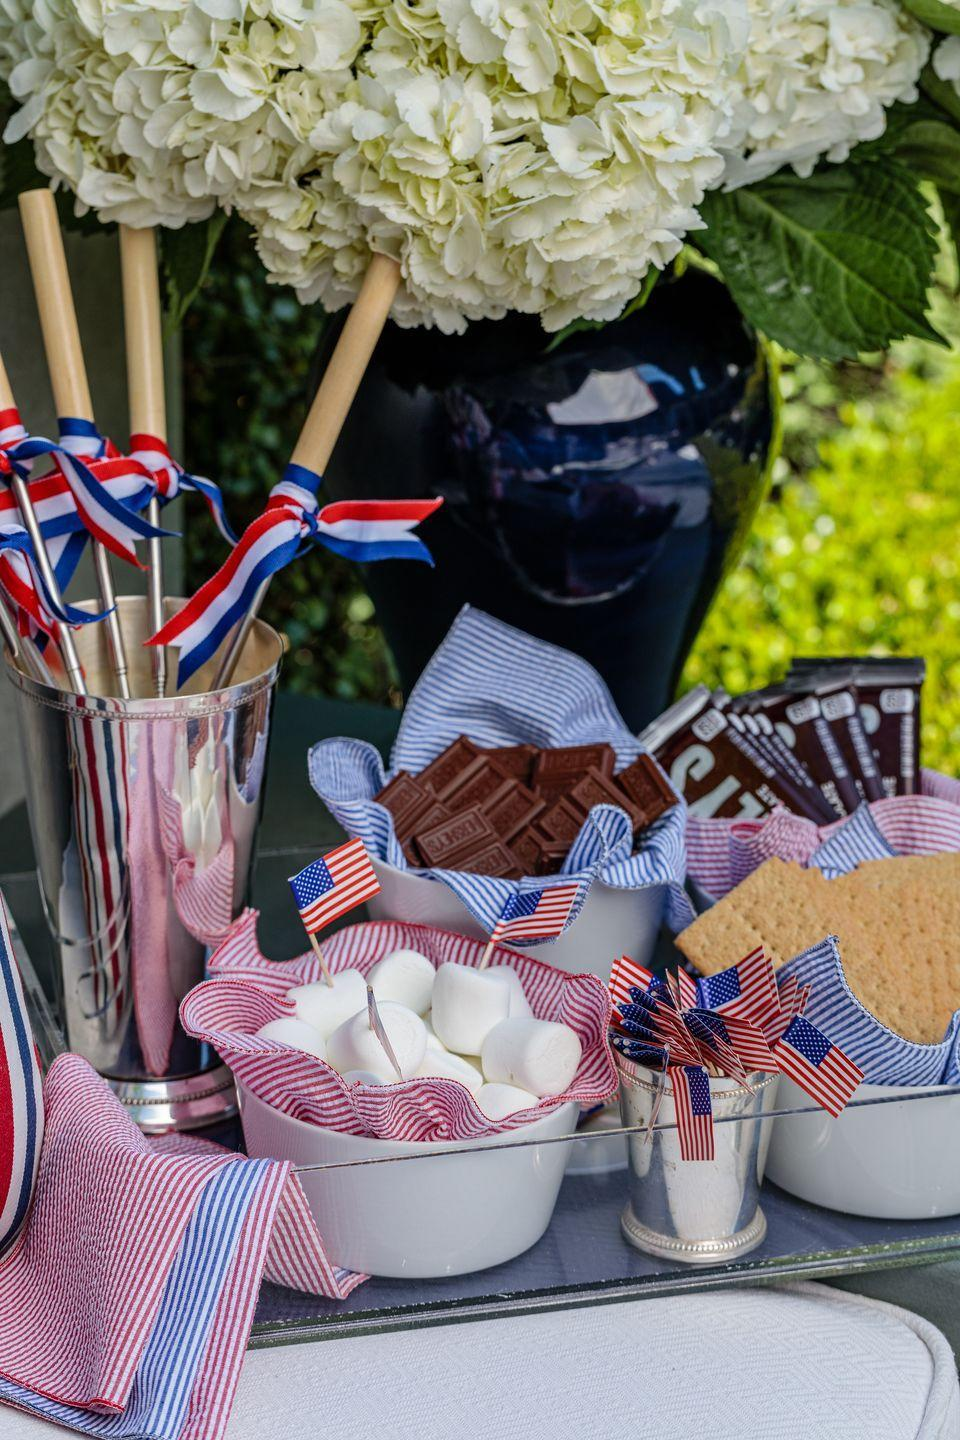 """<p><strong>What are your plans for the Fourth of July this year?</strong></p><p>We are still going up to our cabin at the lake in Sun Valley, Idaho, and will spend the long weekend there. I grew up going to my family's beach house, and we always made s'mores, so that has become a lifelong July Fourth tradition I continue with my family.</p><p><strong>What are a few of your top summer entertaining tips?</strong></p><p>Especially when it comes to Independence Day, it's important to keep the food easy to eat. I like to offer little nibbles so that all the generations can easily wander off to different parts of the gathering. </p><p>I like to align my offerings to the season. I spent a lot of summers on the coast of Maine, so I love to serve lobster rolls and other nostalgic summer foods. I mix classic with unique, like serving my popsicles infused with berries and White Claw spiked seltzer.</p><p>The minute [guests] arrive, you don't want them to worry about anything. I prep in advance so that I can do the same once the party starts. </p><p>When you're outside and have a large area to entertain in, I like to have something going on in several designated spaces. </p><p><em> Navy ginger jar, <a href=""""https://shoplohome.com/"""" rel=""""nofollow noopener"""" target=""""_blank"""" data-ylk=""""slk:Lo Home"""" class=""""link rapid-noclick-resp"""">Lo Home</a>. Lucite tray, <a href=""""https://www.markandgraham.com/"""" rel=""""nofollow noopener"""" target=""""_blank"""" data-ylk=""""slk:Mark and Graham"""" class=""""link rapid-noclick-resp"""">Mark and Graham</a>. Seersucker napkins, Dot and Army from <a href=""""https://food52.com/"""" rel=""""nofollow noopener"""" target=""""_blank"""" data-ylk=""""slk:Food52"""" class=""""link rapid-noclick-resp"""">Food52</a>. White bowls, <a href=""""https://www.crateandbarrel.com/"""" rel=""""nofollow noopener"""" target=""""_blank"""" data-ylk=""""slk:Crate and Barrel."""" class=""""link rapid-noclick-resp"""">Crate and Barrel.</a></em></p>"""